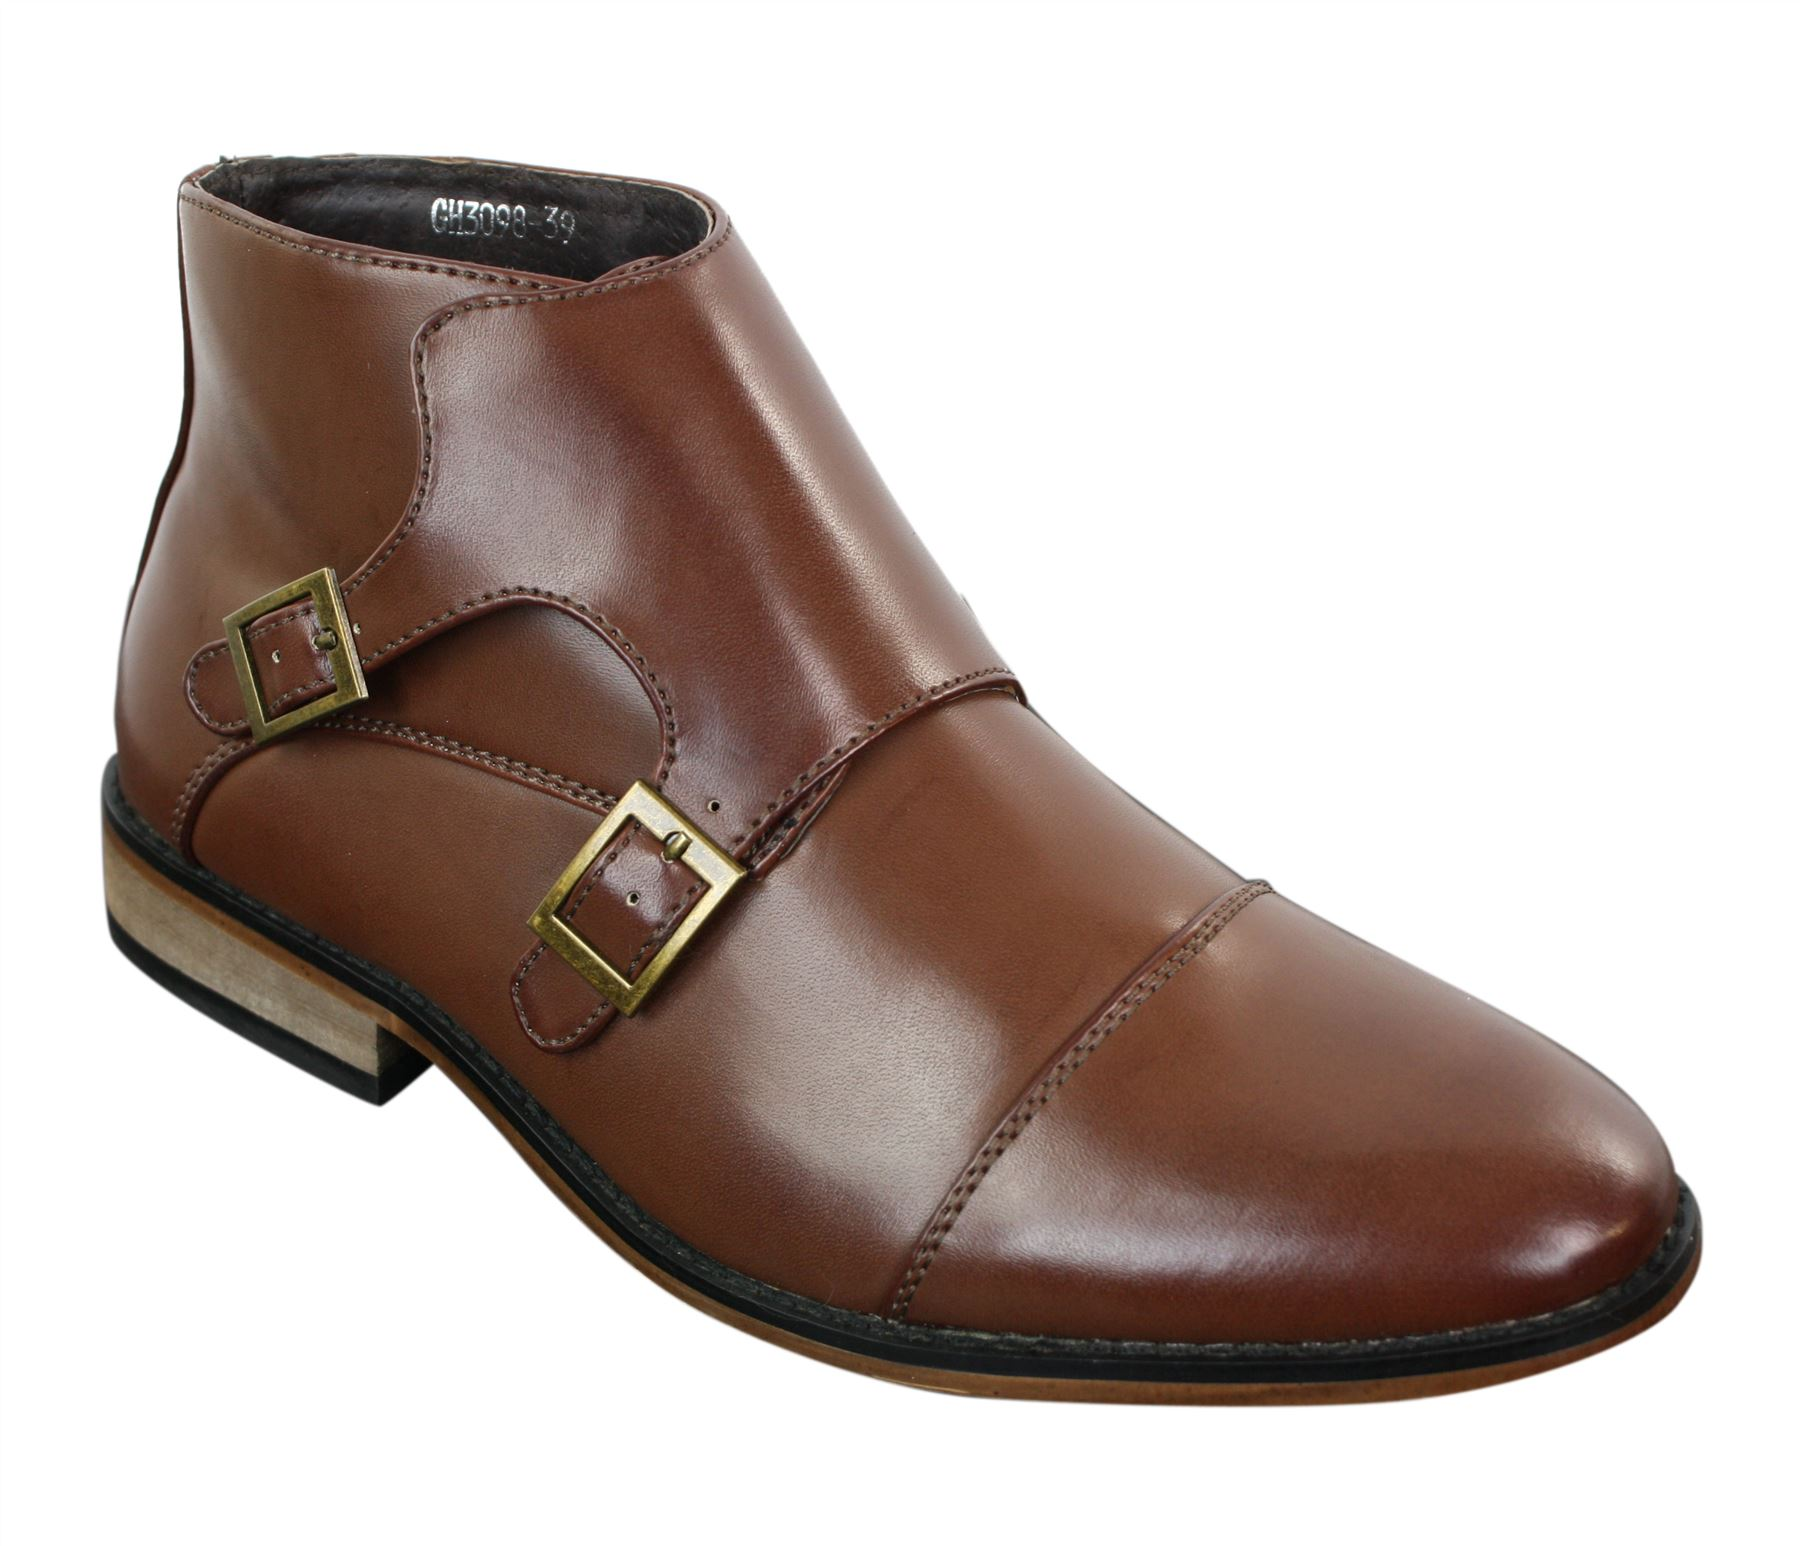 lining title casual show ankle leather buckle smart Mens about original boots height Details genuine OXPTZiku